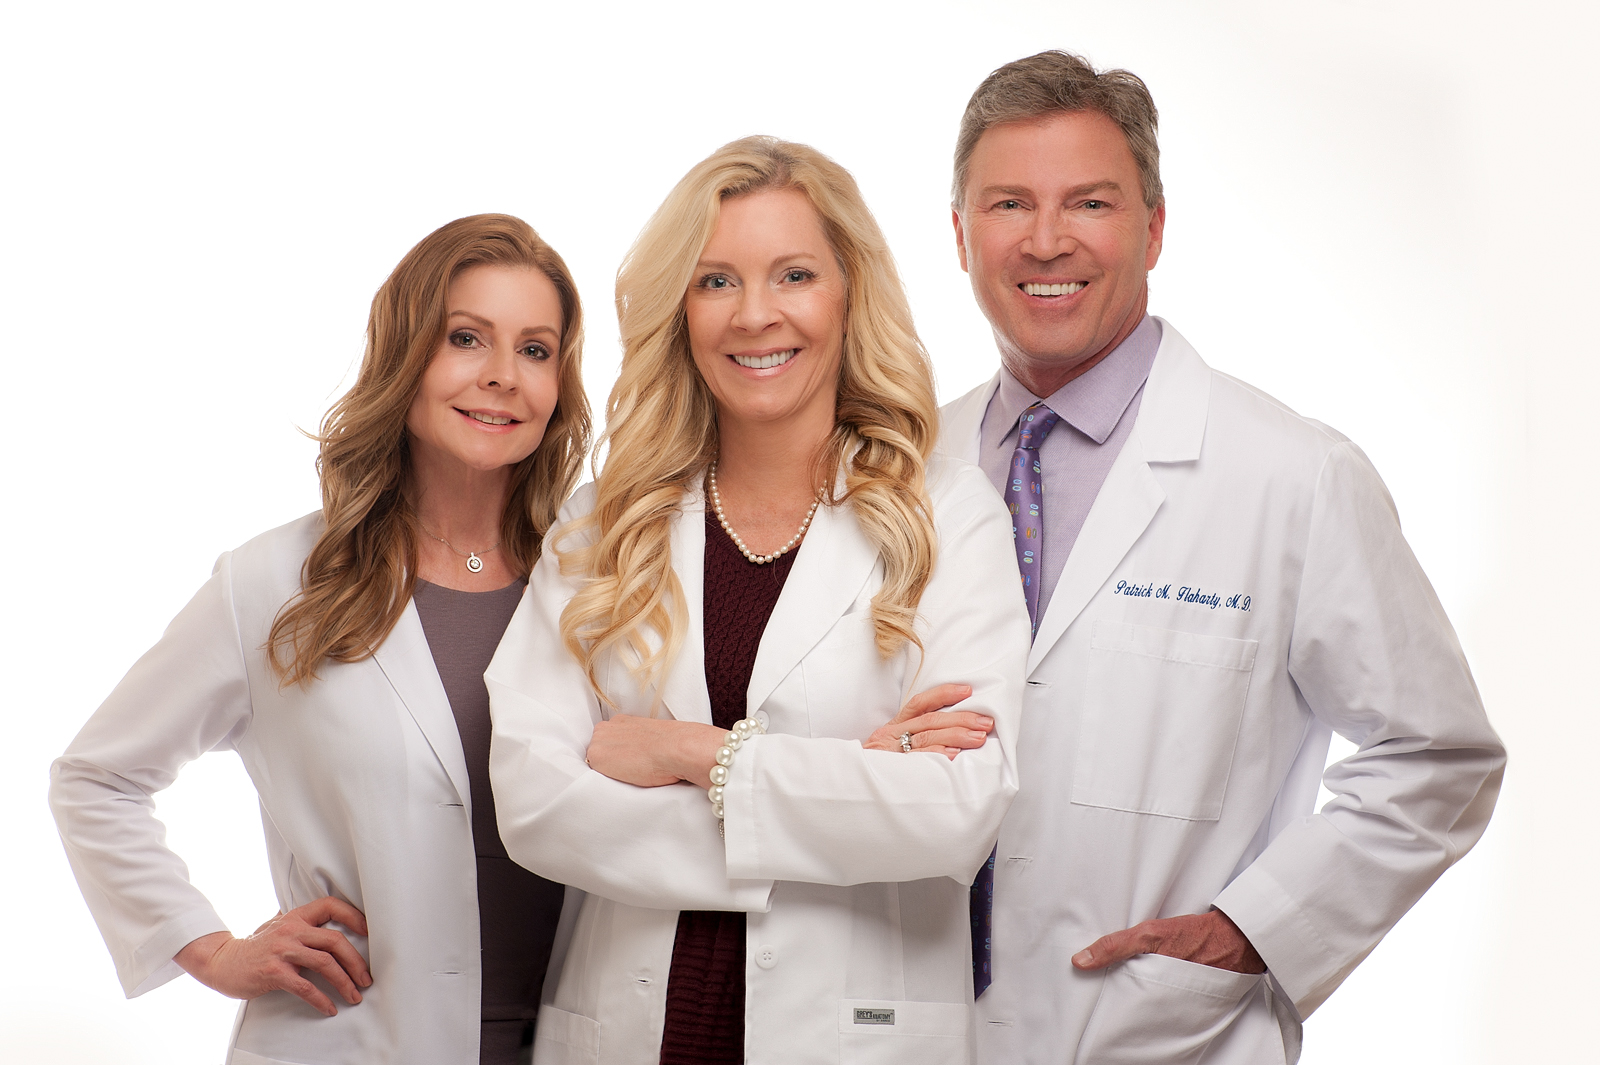 14-doctor-surgeon-beauty-welcoming-attractive-team-polished-fort-myers-headshots.jpg